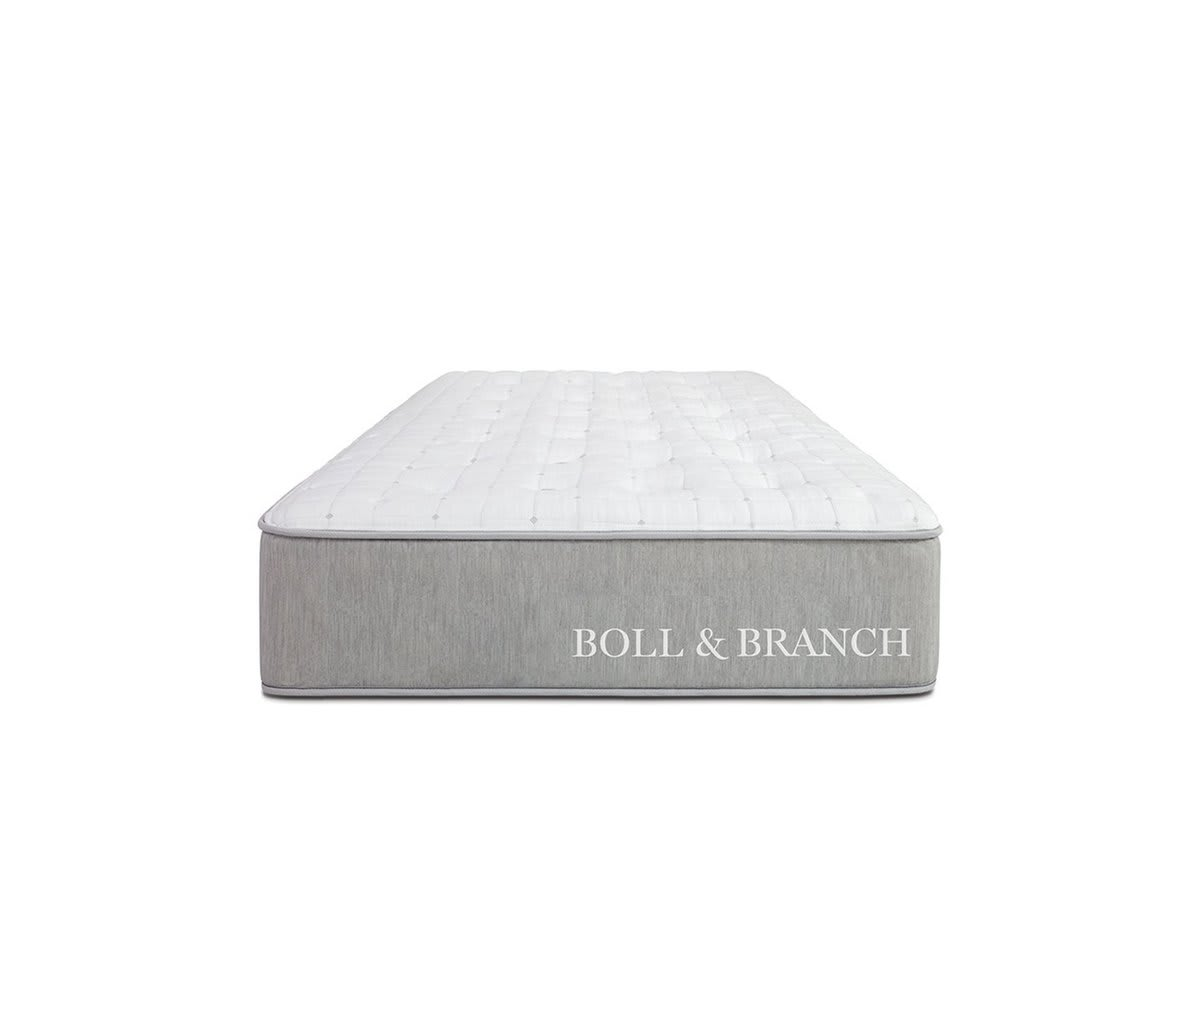 The Mattress collection image